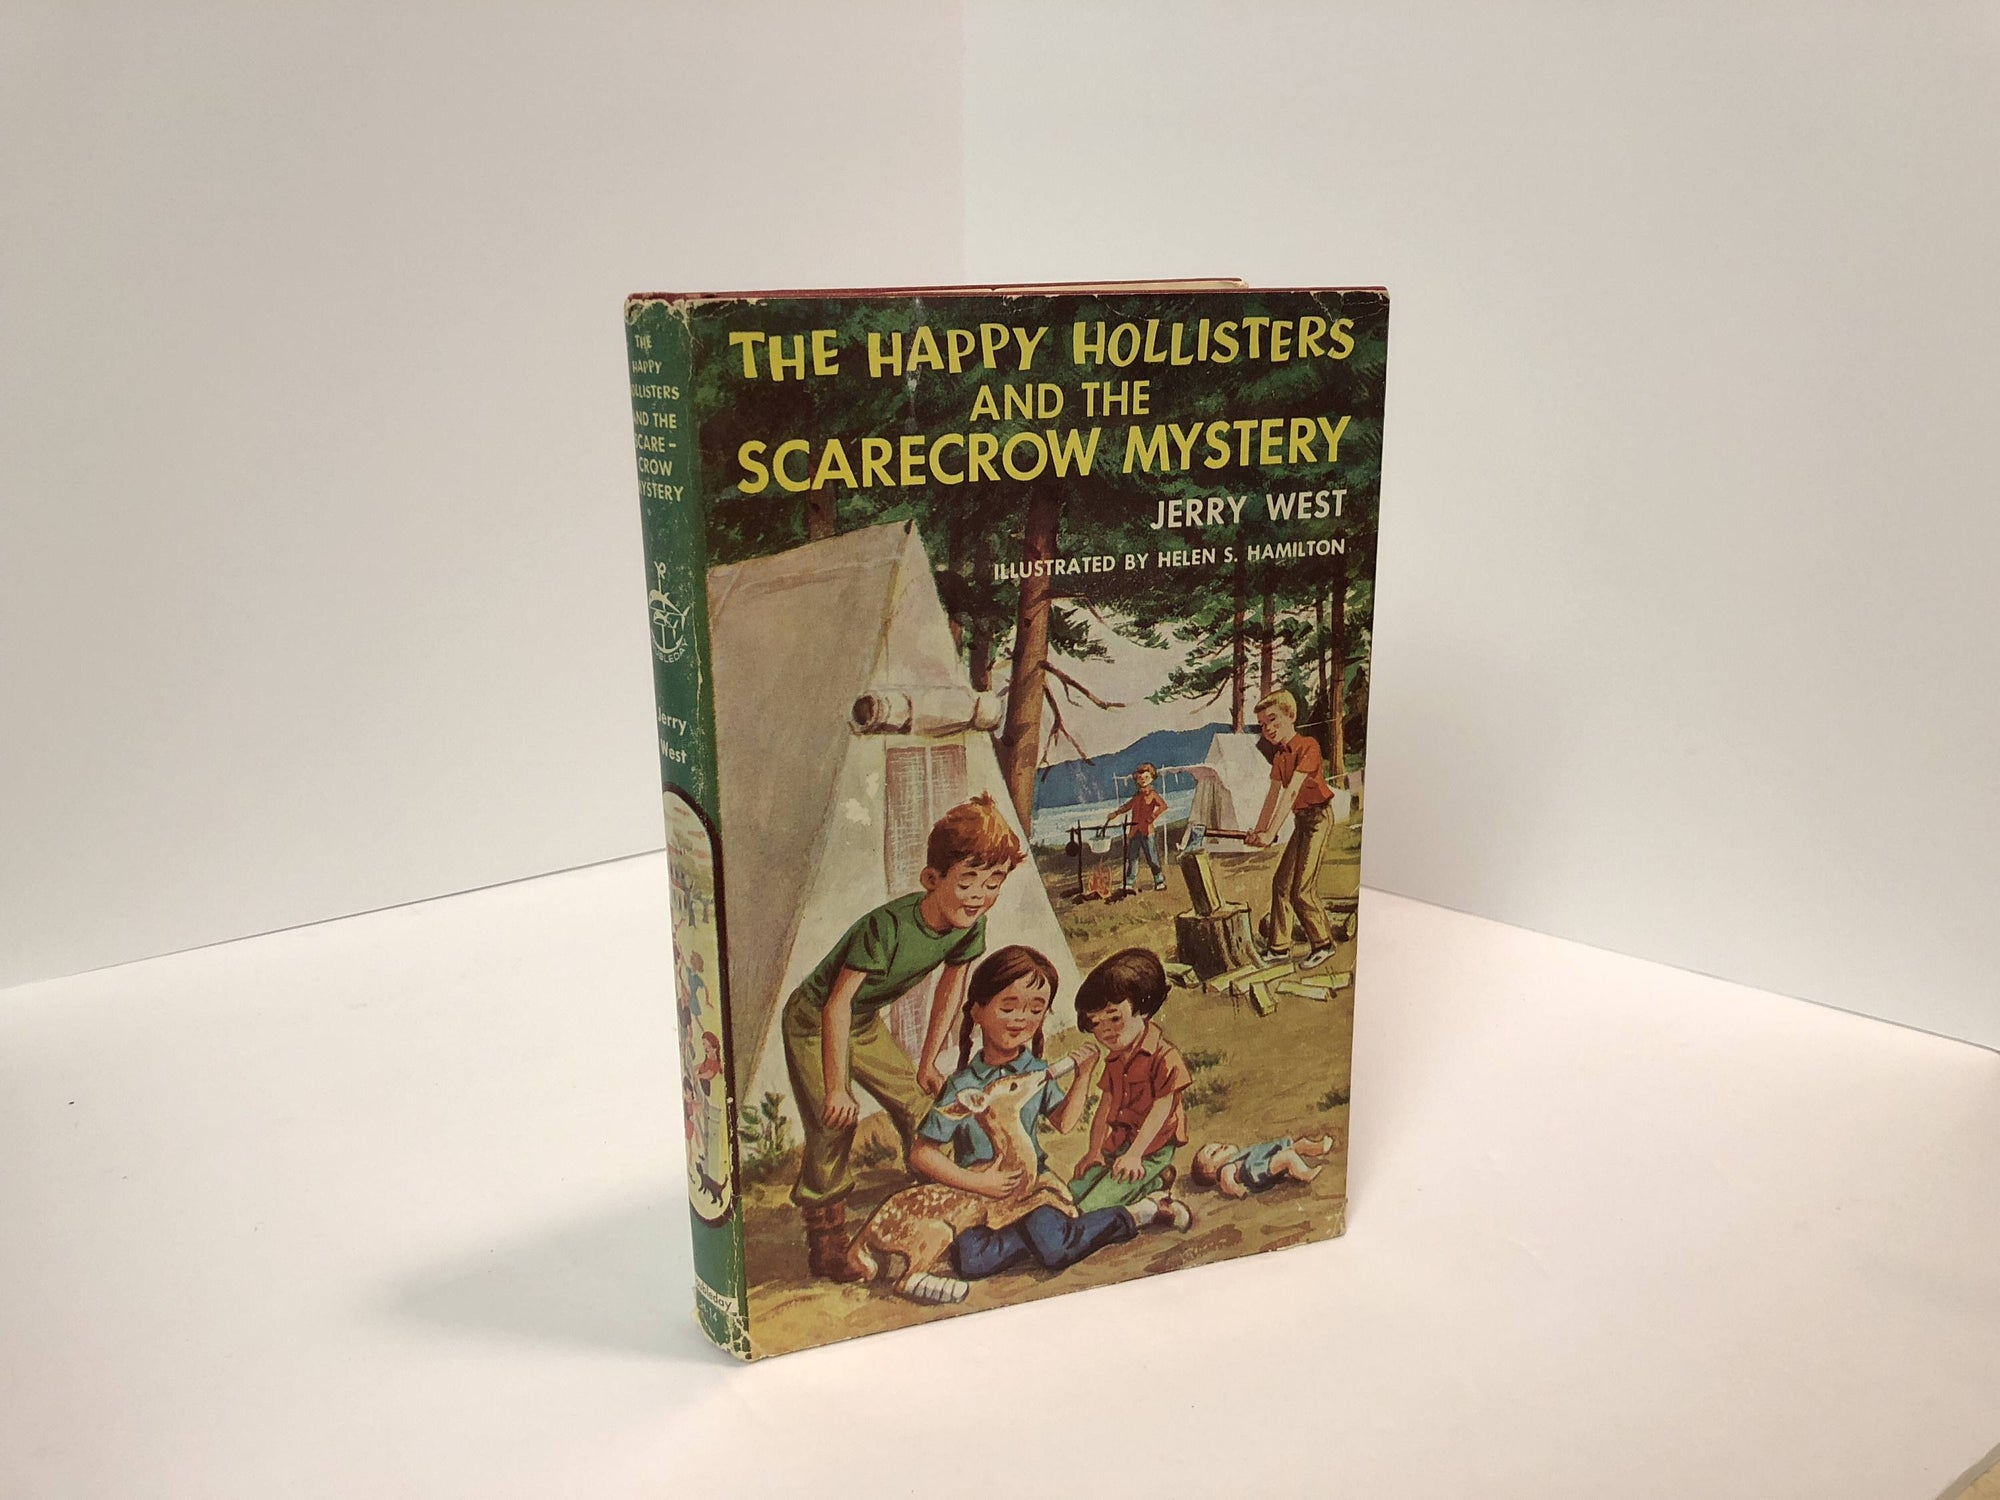 The Happy Hollisters and the Scarecrow Mystery #14 by Jerry West Illustrations by Helen S. Hamilton-1957 Vintage Book